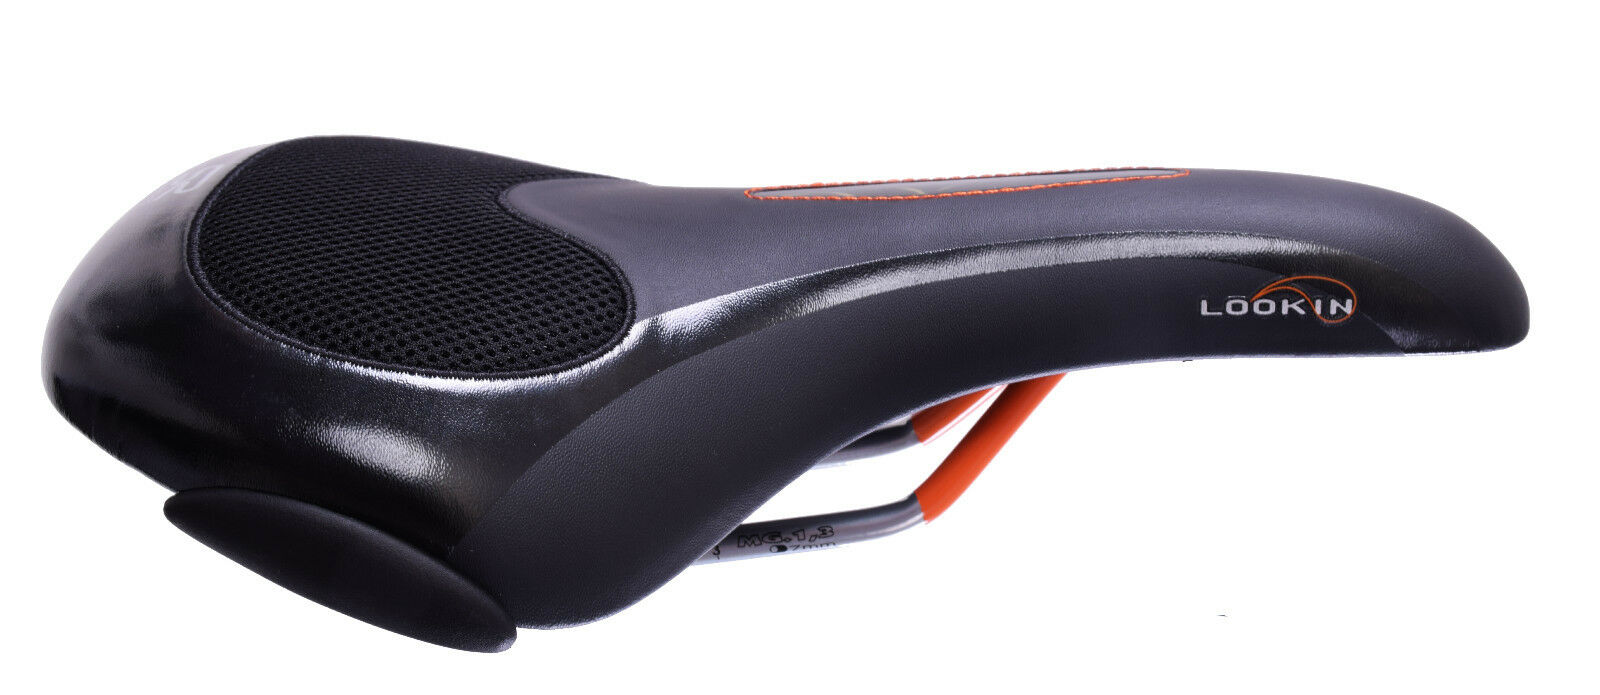 SELLE ROYAL ROYAL GEL LOOKIN WOMENS MODERATE  COMFORT PADDING LIGHTWEIGHT SADDLE  best service